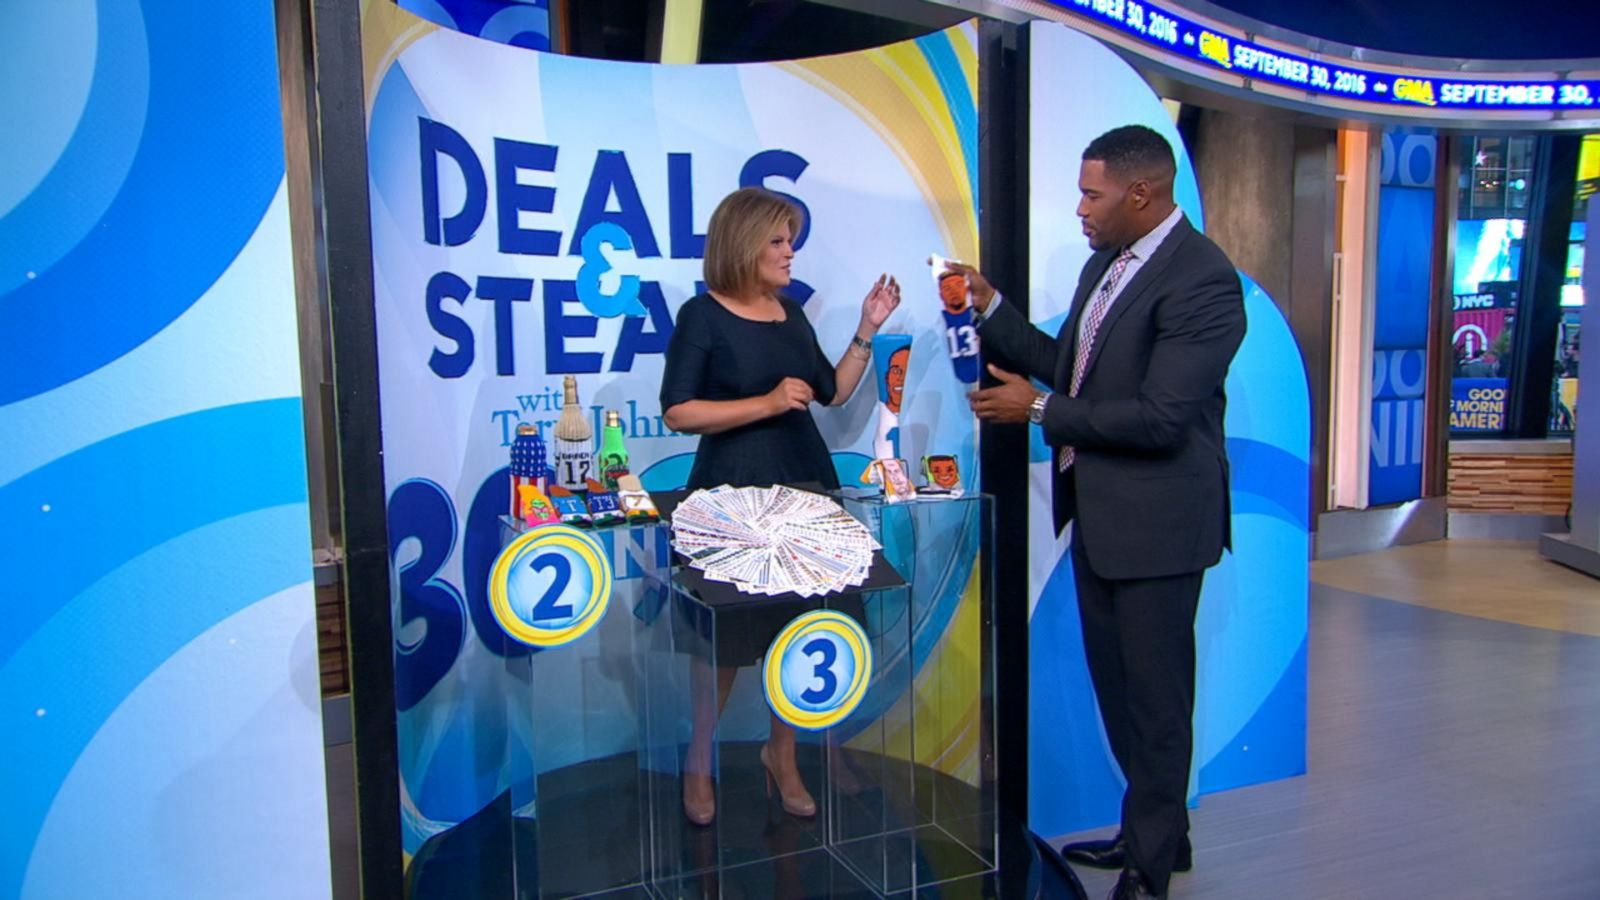 VIDEO: Deals and Steals: 30 Deals on September 30